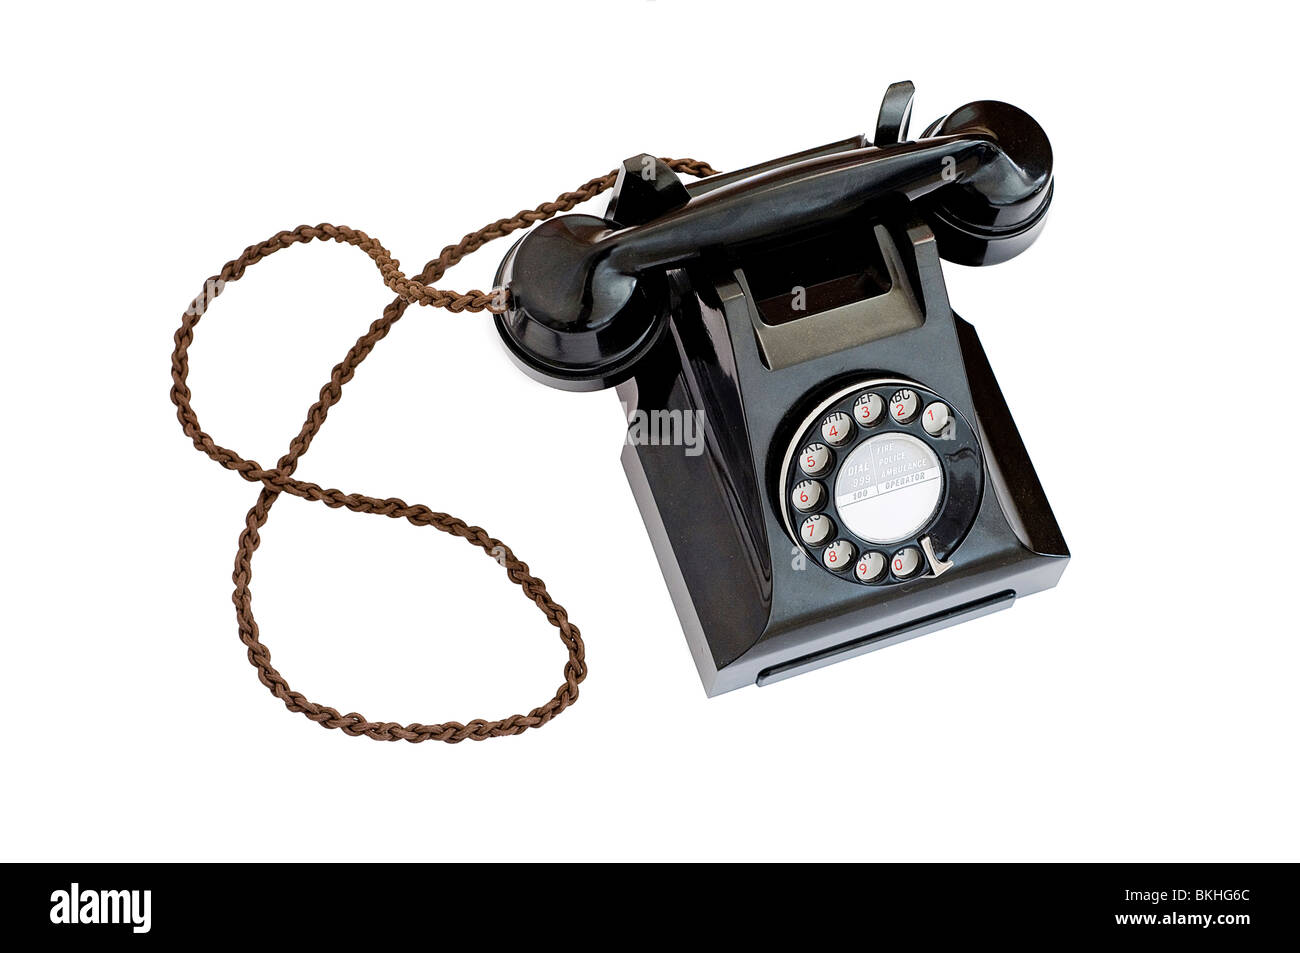 Old fashioned phone receiver for cell 11